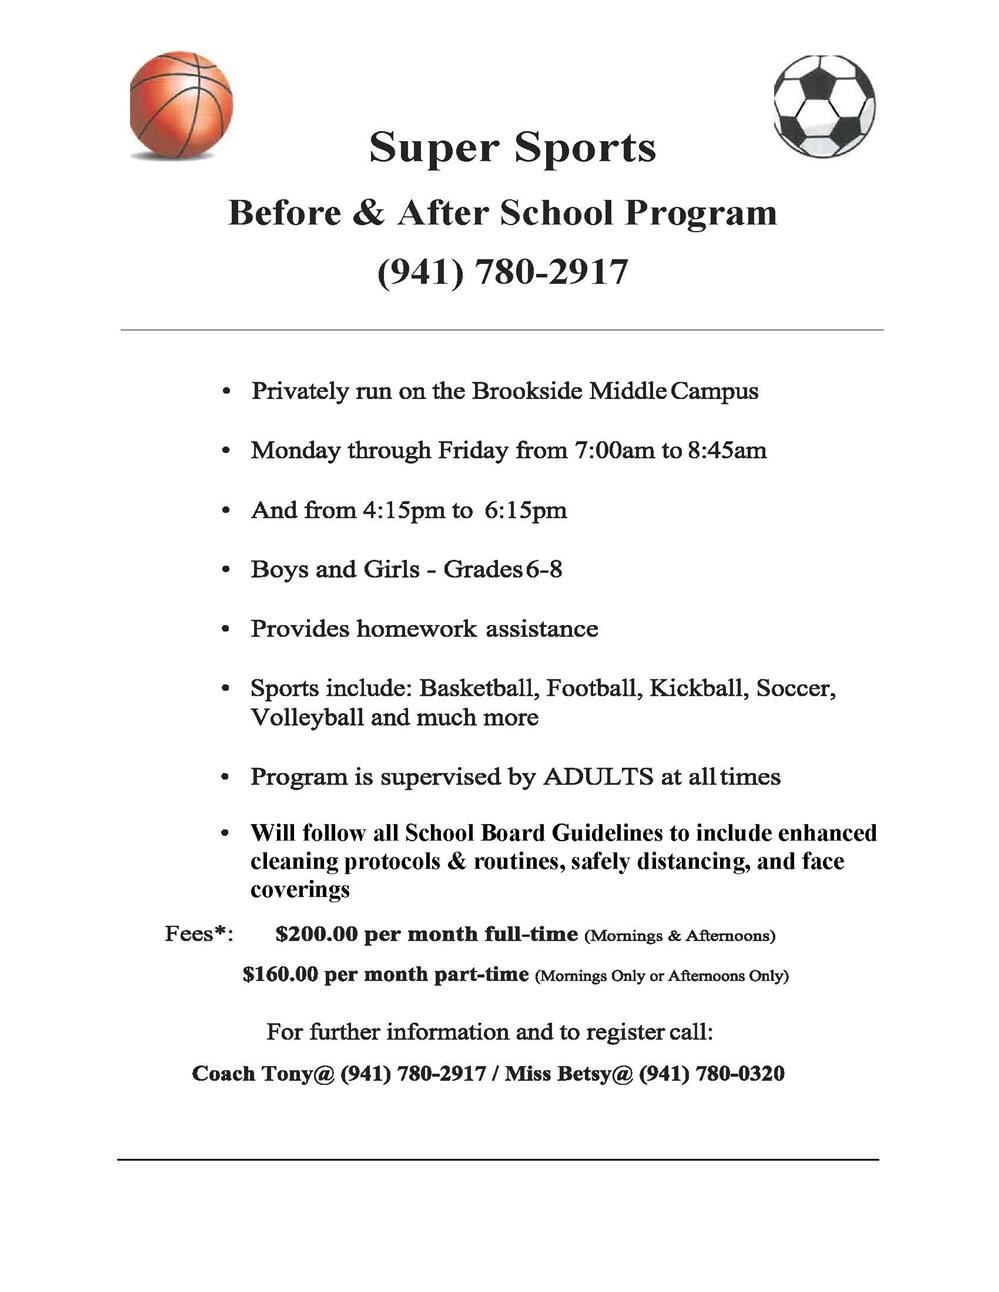 Super Sports Before/After School Program